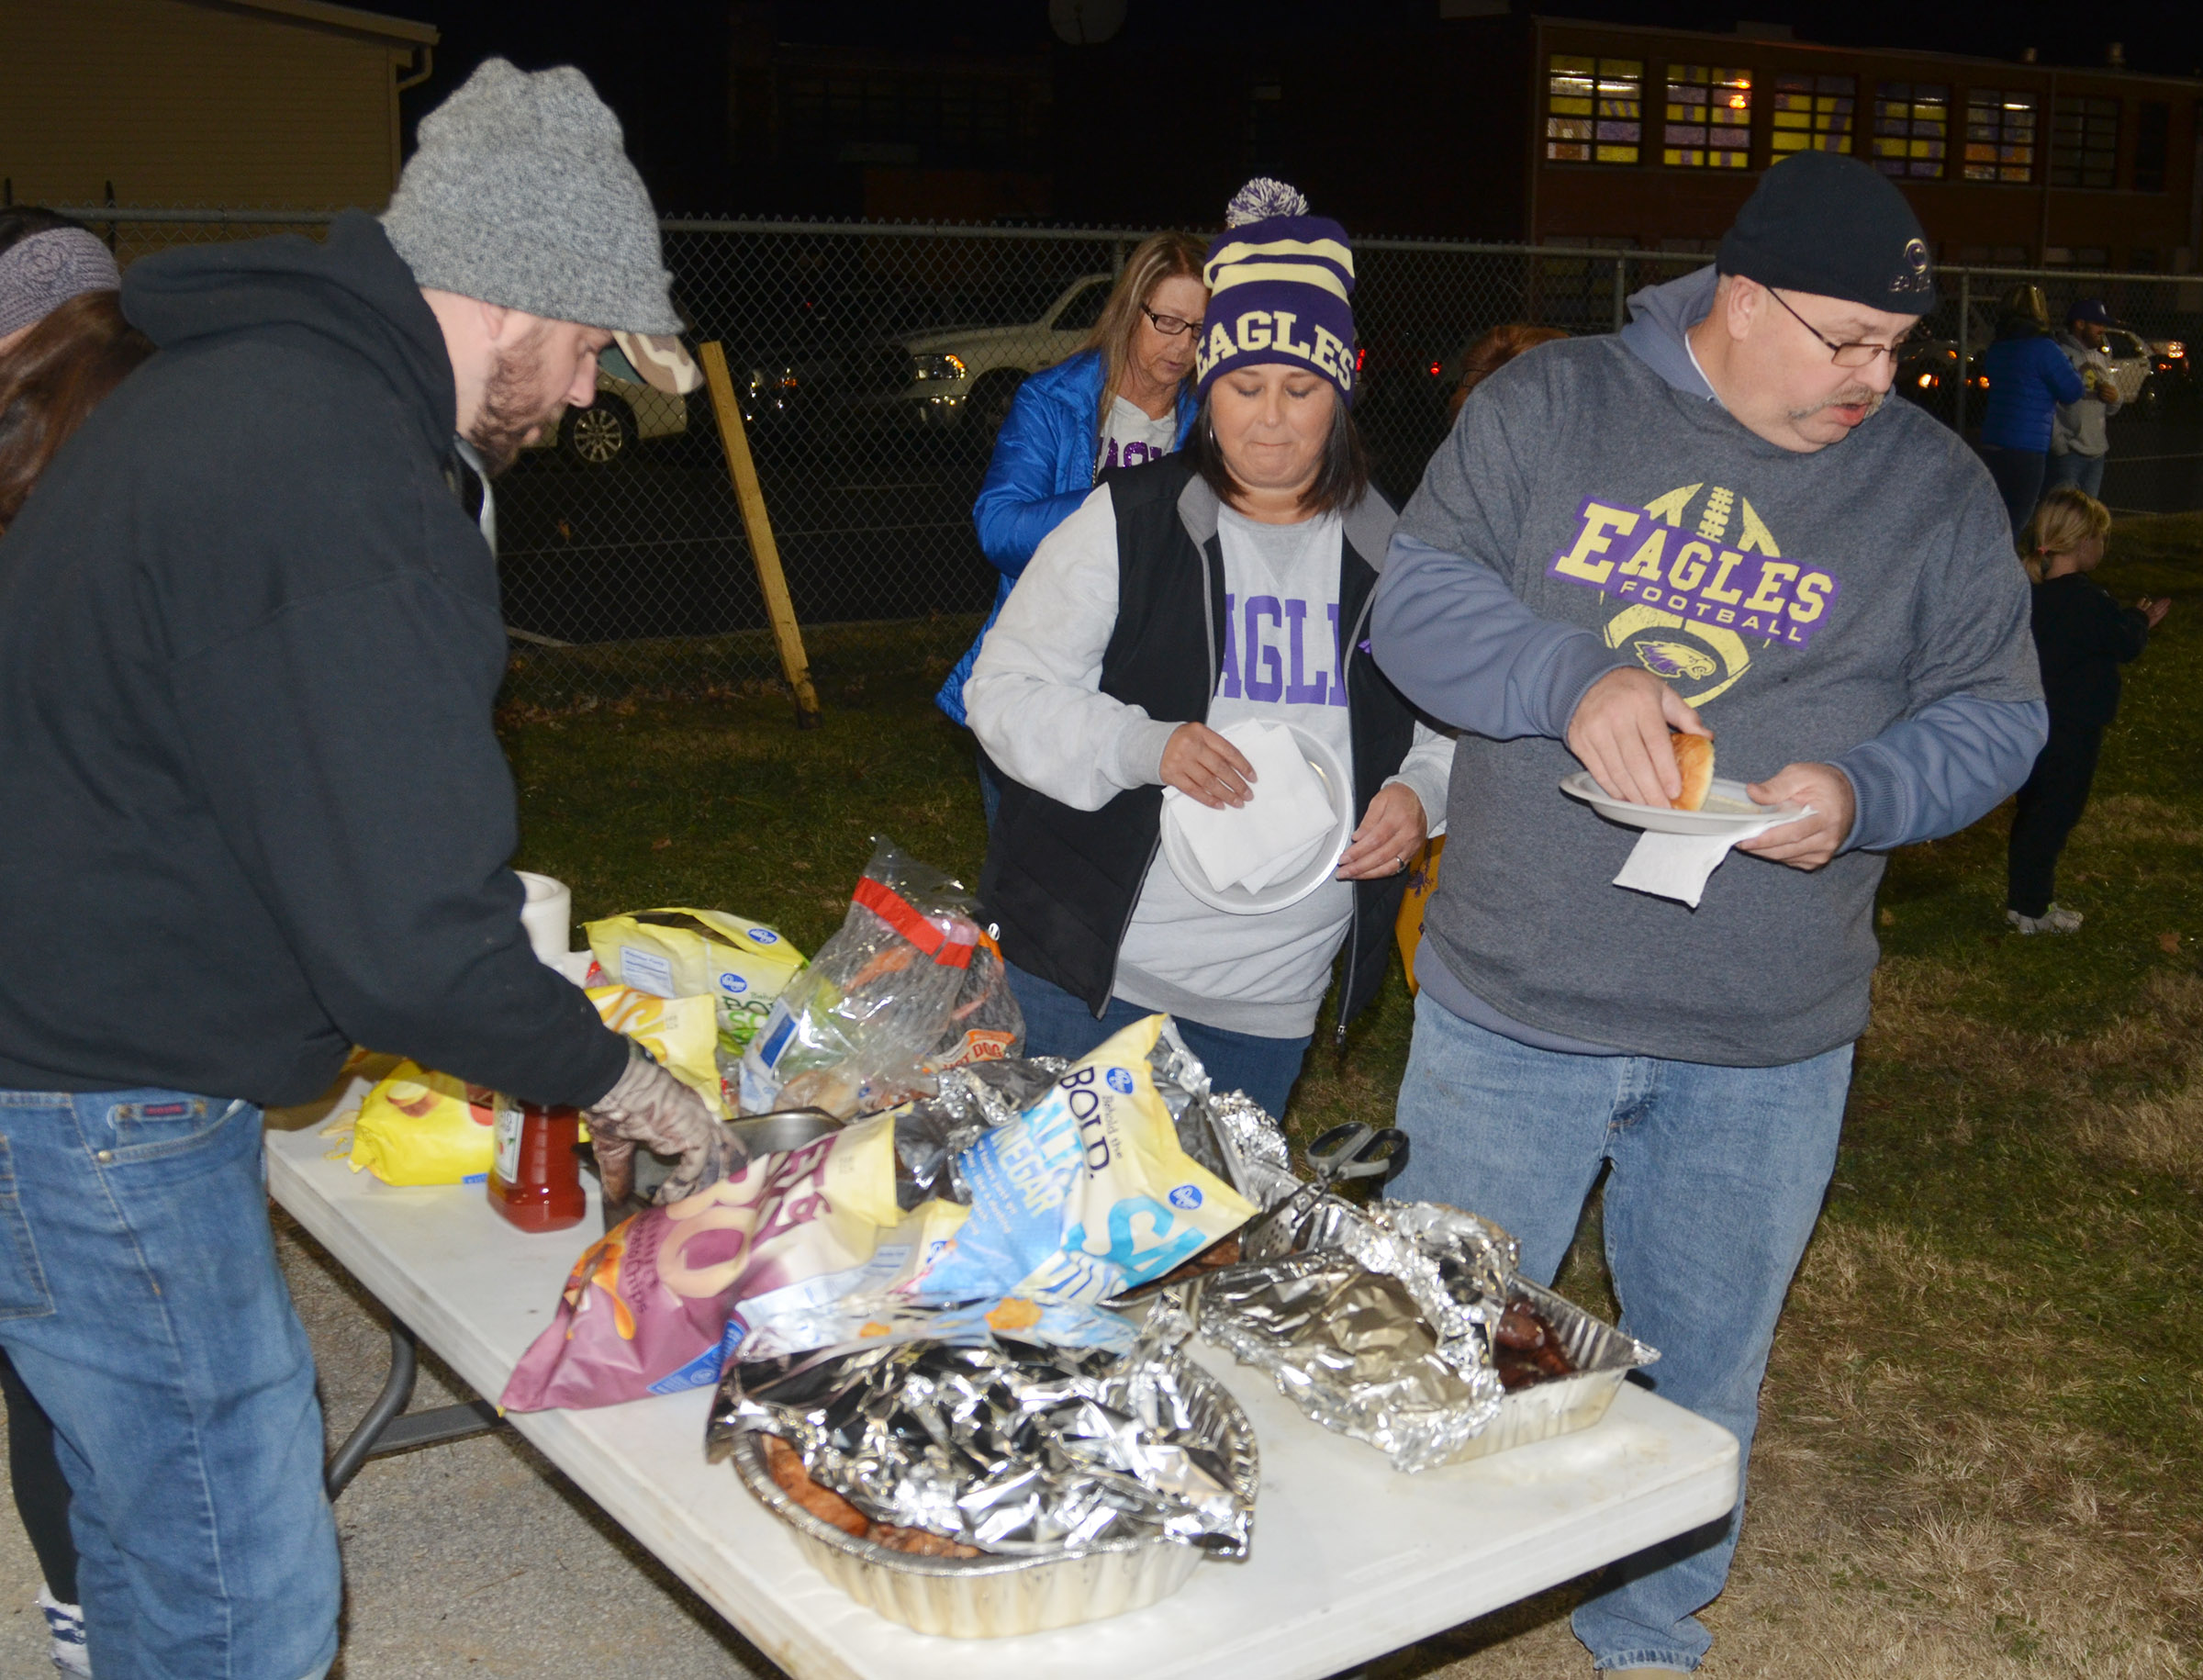 CHS hosted a tailgate before the game for students, staff members and fans. Board of Education member Suzanne Wilson and her husband Daren get their food.